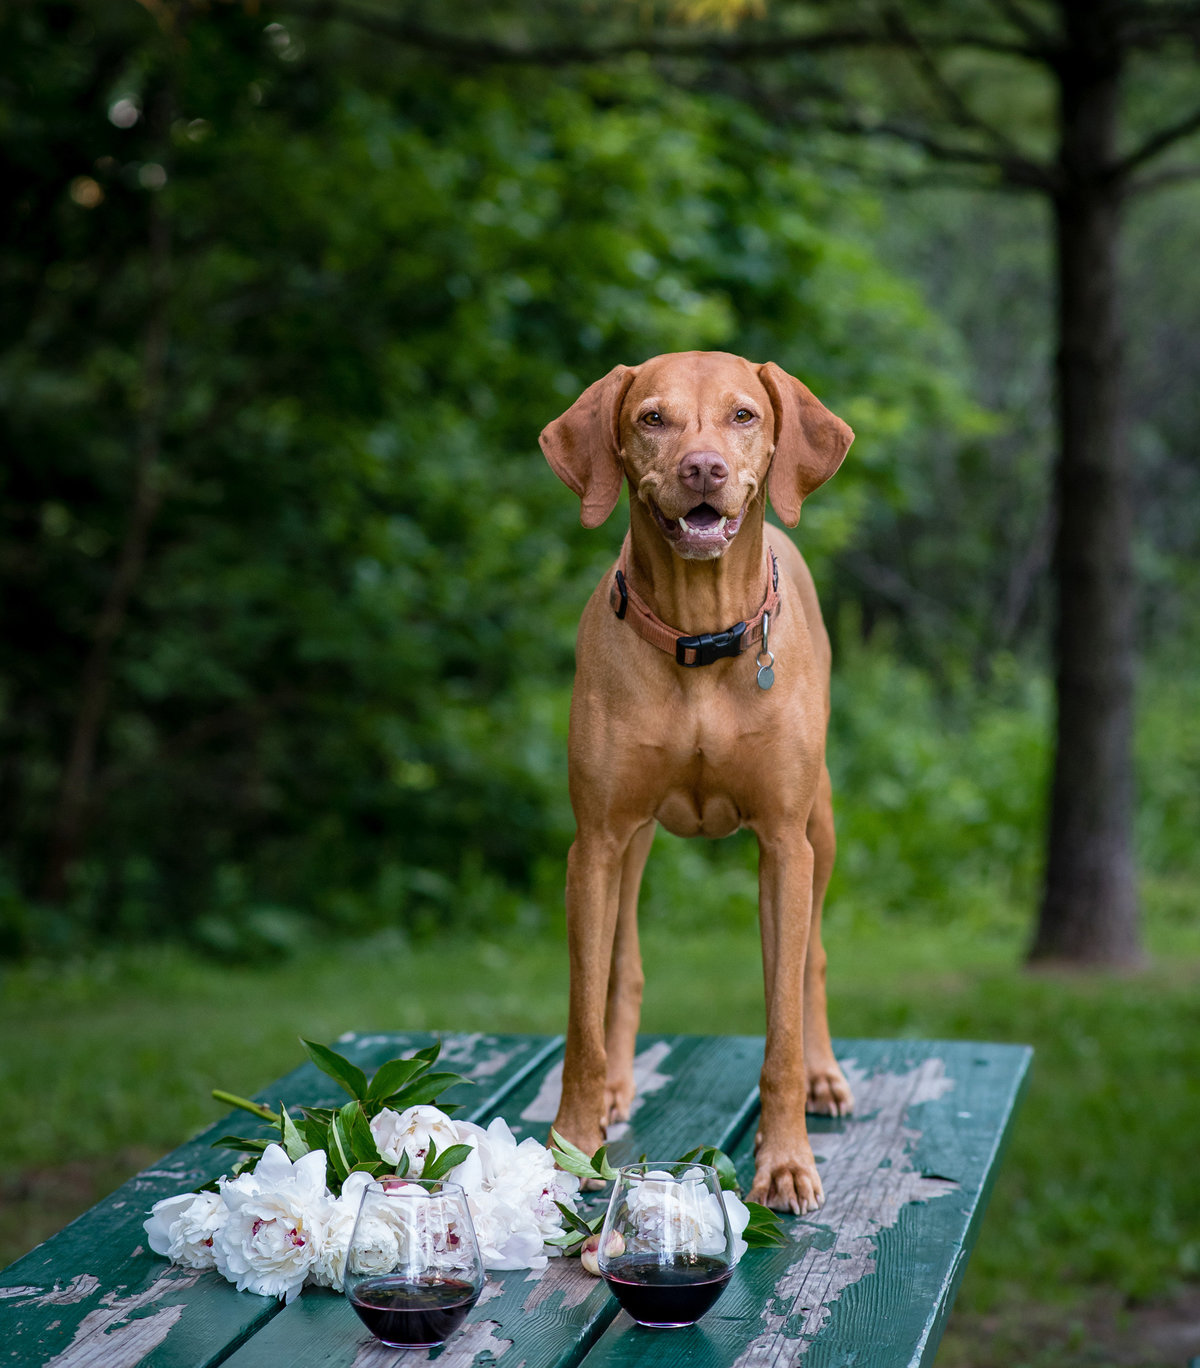 Smiling Vizsla dog on a picnic table with flowers